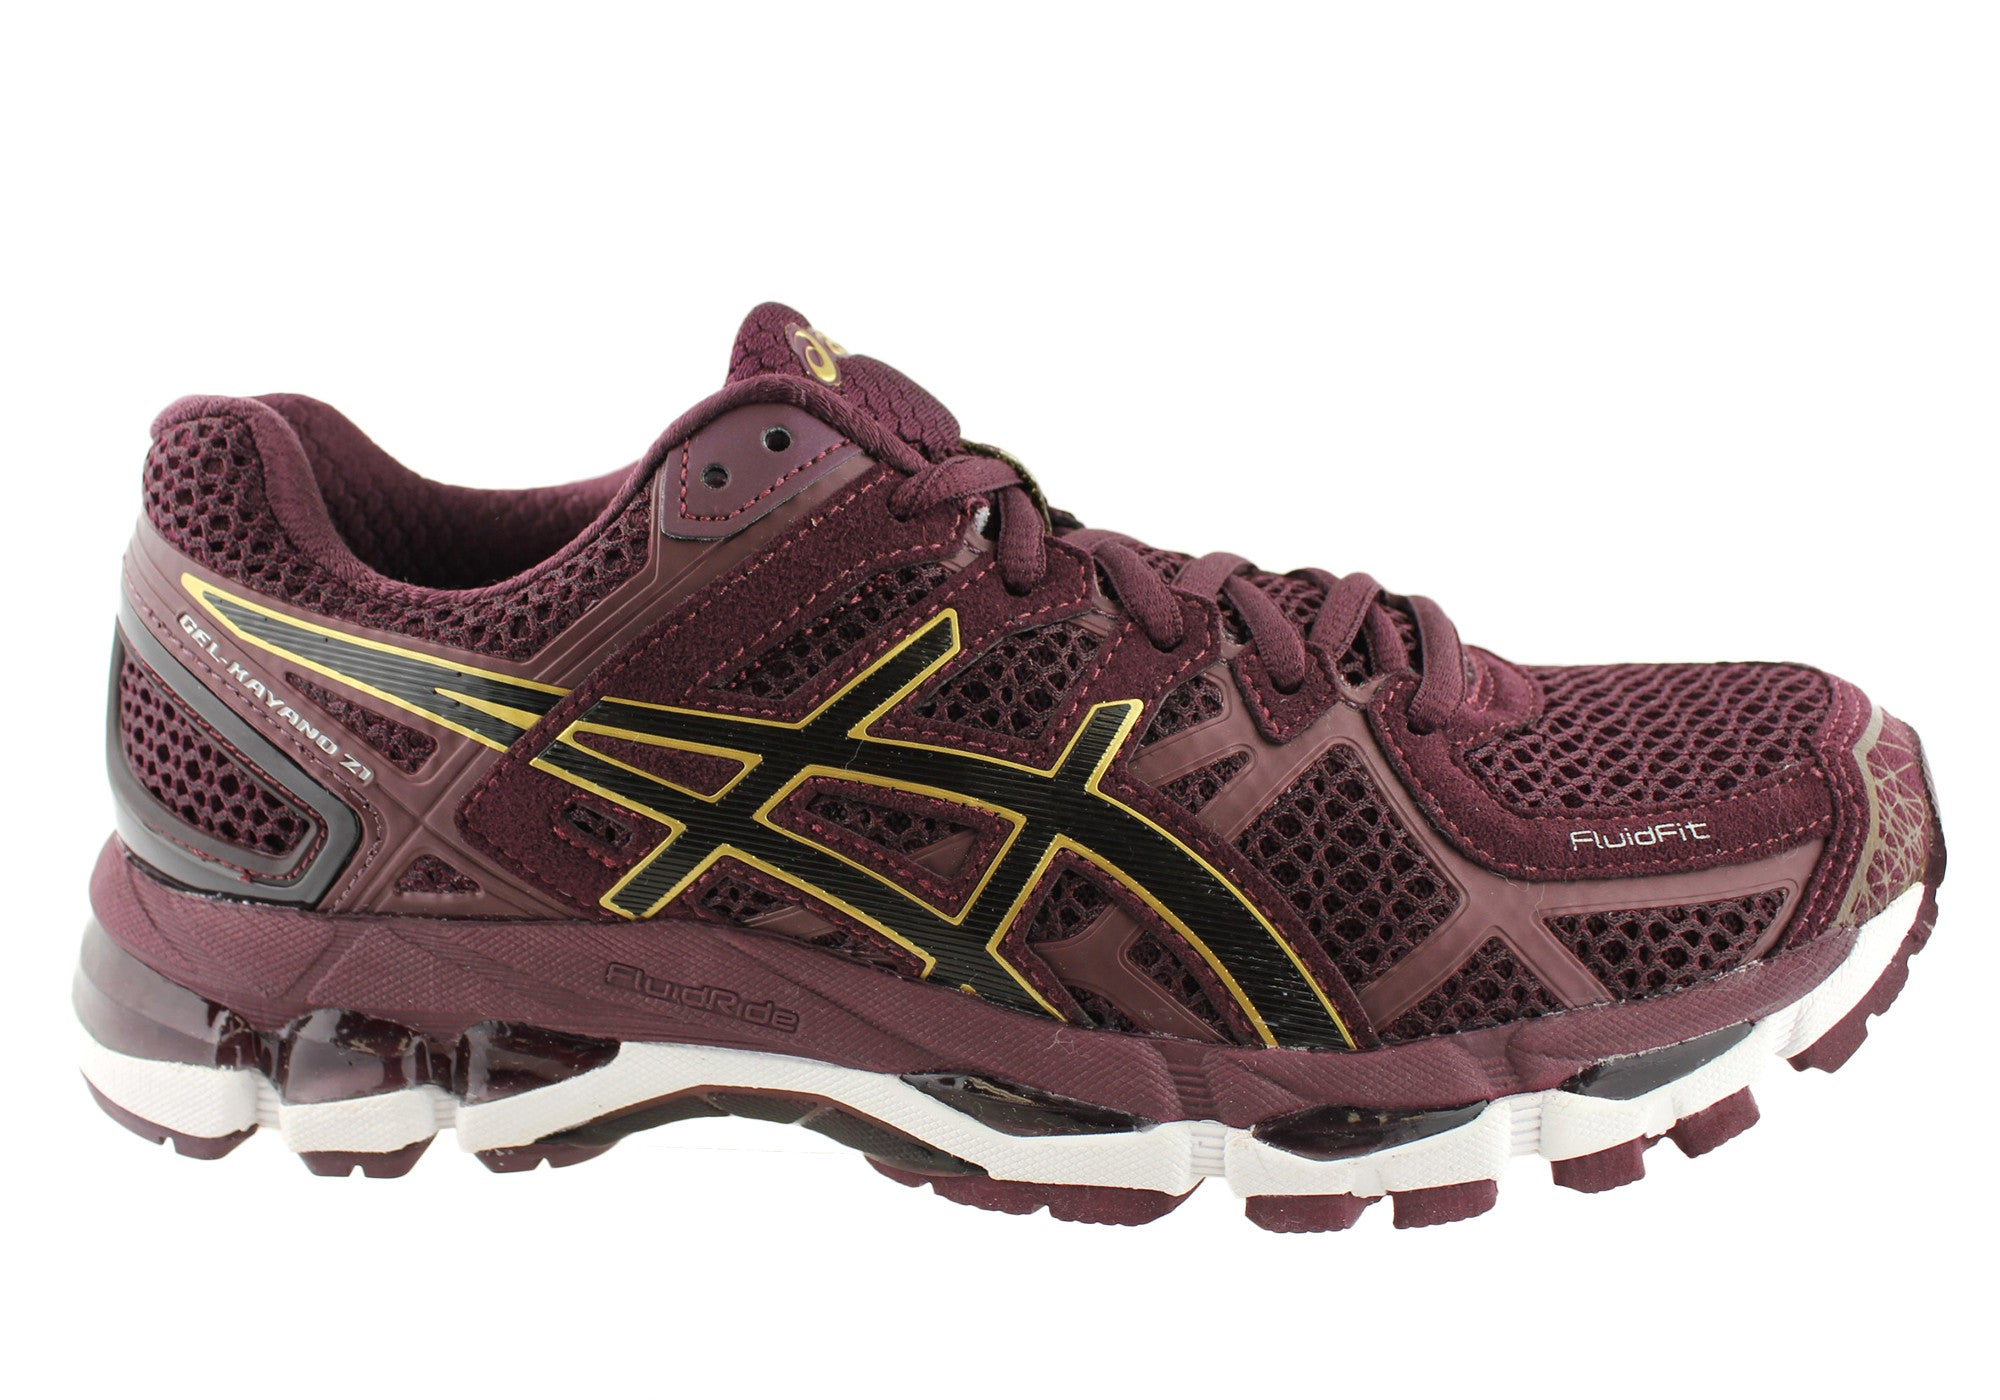 new asics gel kayano 21 womens cushioned running shoes ebay. Black Bedroom Furniture Sets. Home Design Ideas